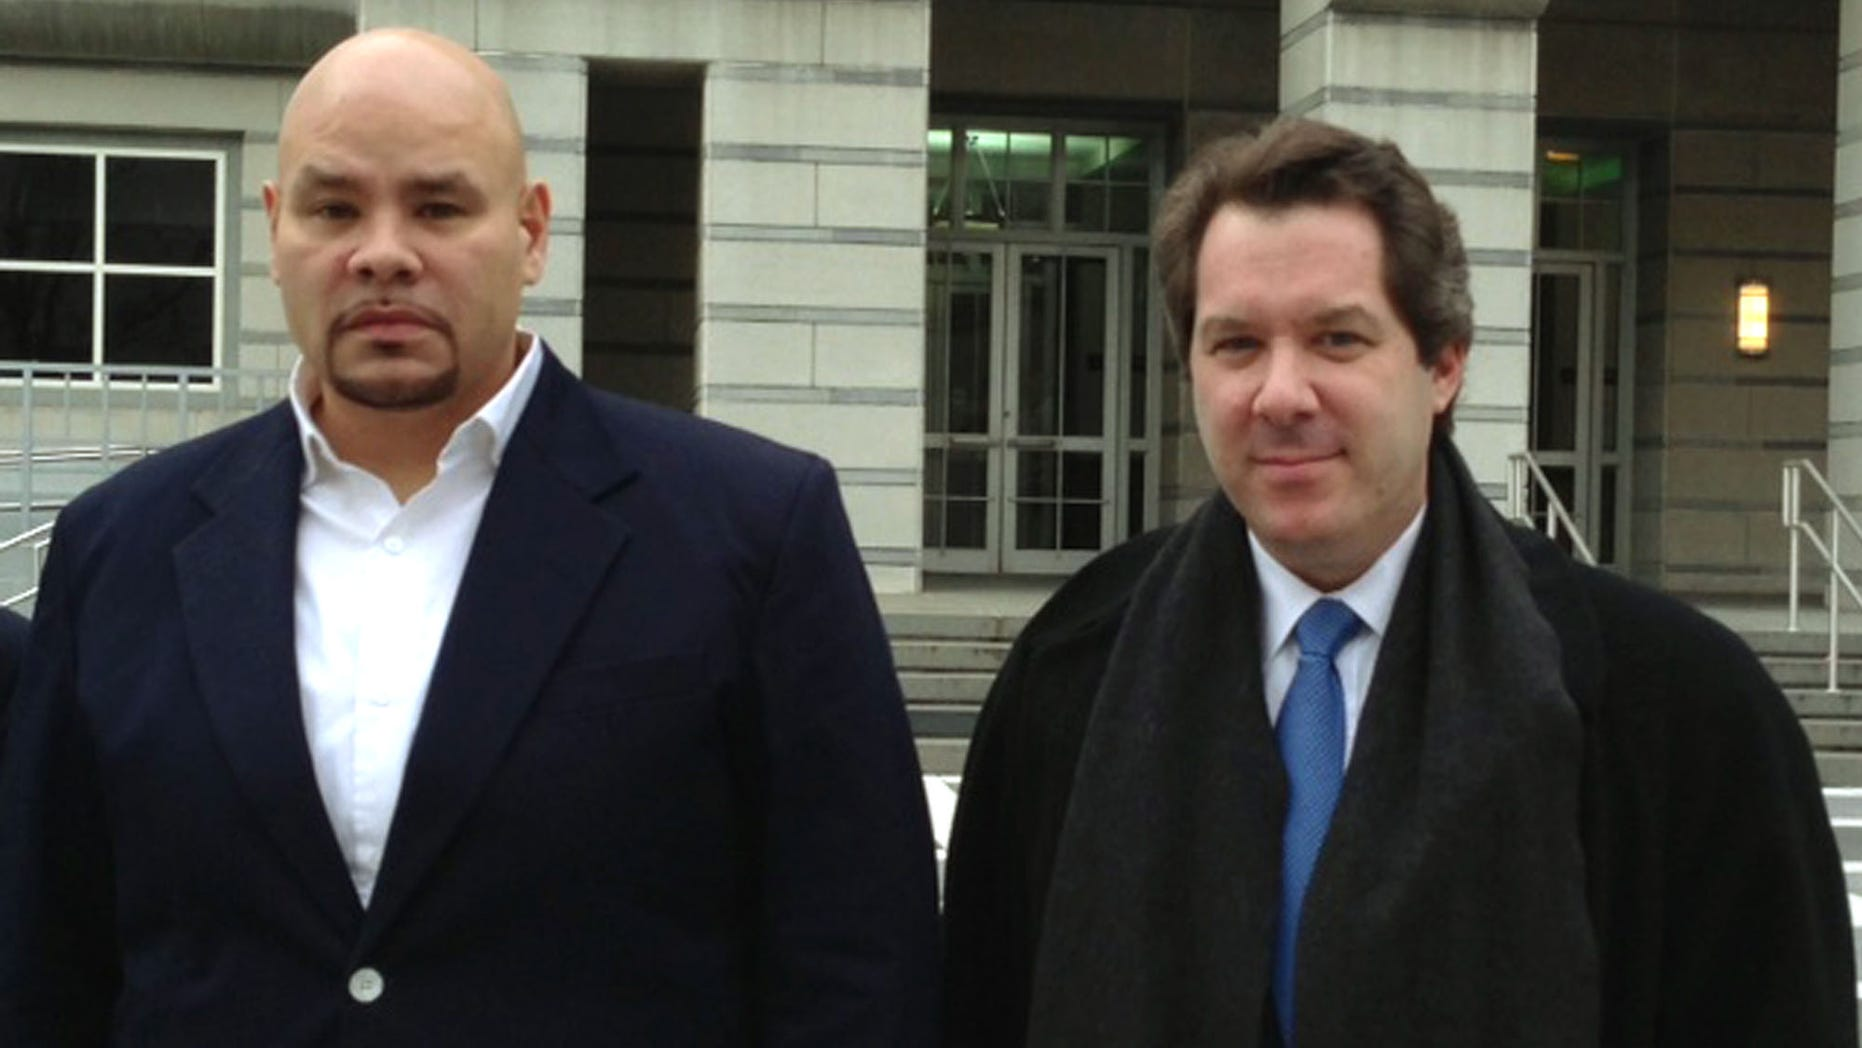 Dec. 20, 2012: Fat Joe, whose real name is Joseph Cartagena, leaves court with his attorney Jeffrey Lichtman in Newark N.J.